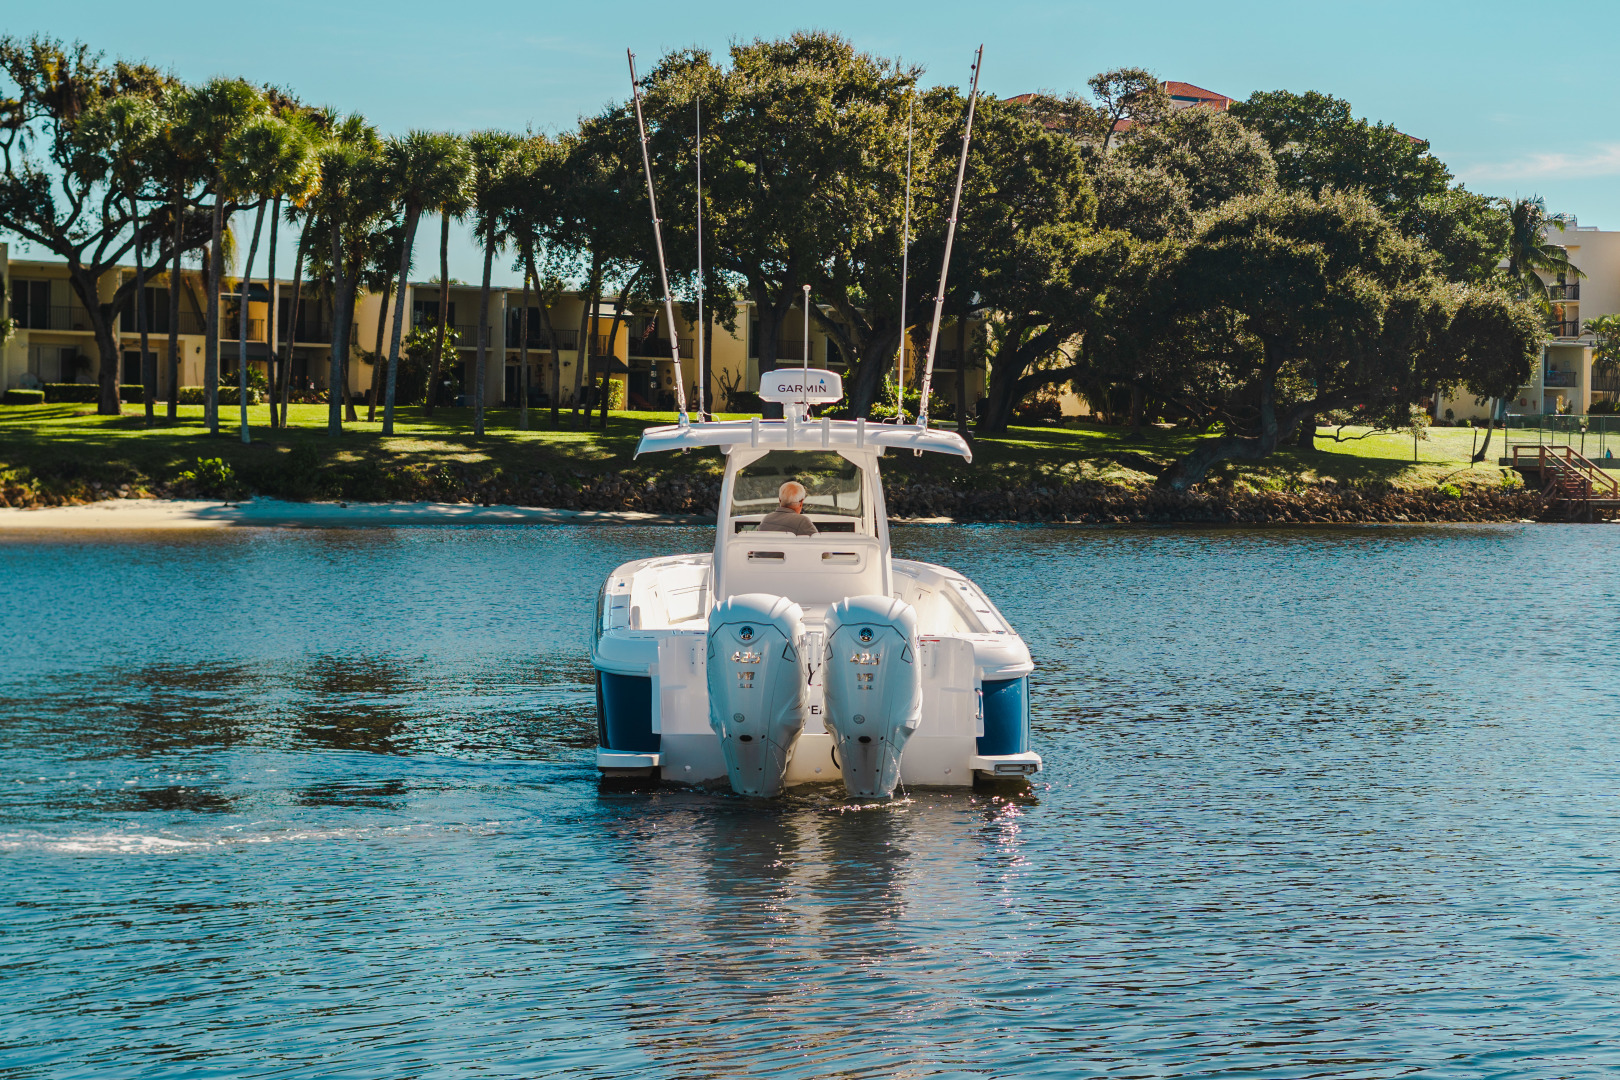 Intrepid-345 Nomad 2020-CORYPHEE North Palm Beach-Florida-United States-CORYPHEE-1574583 | Thumbnail